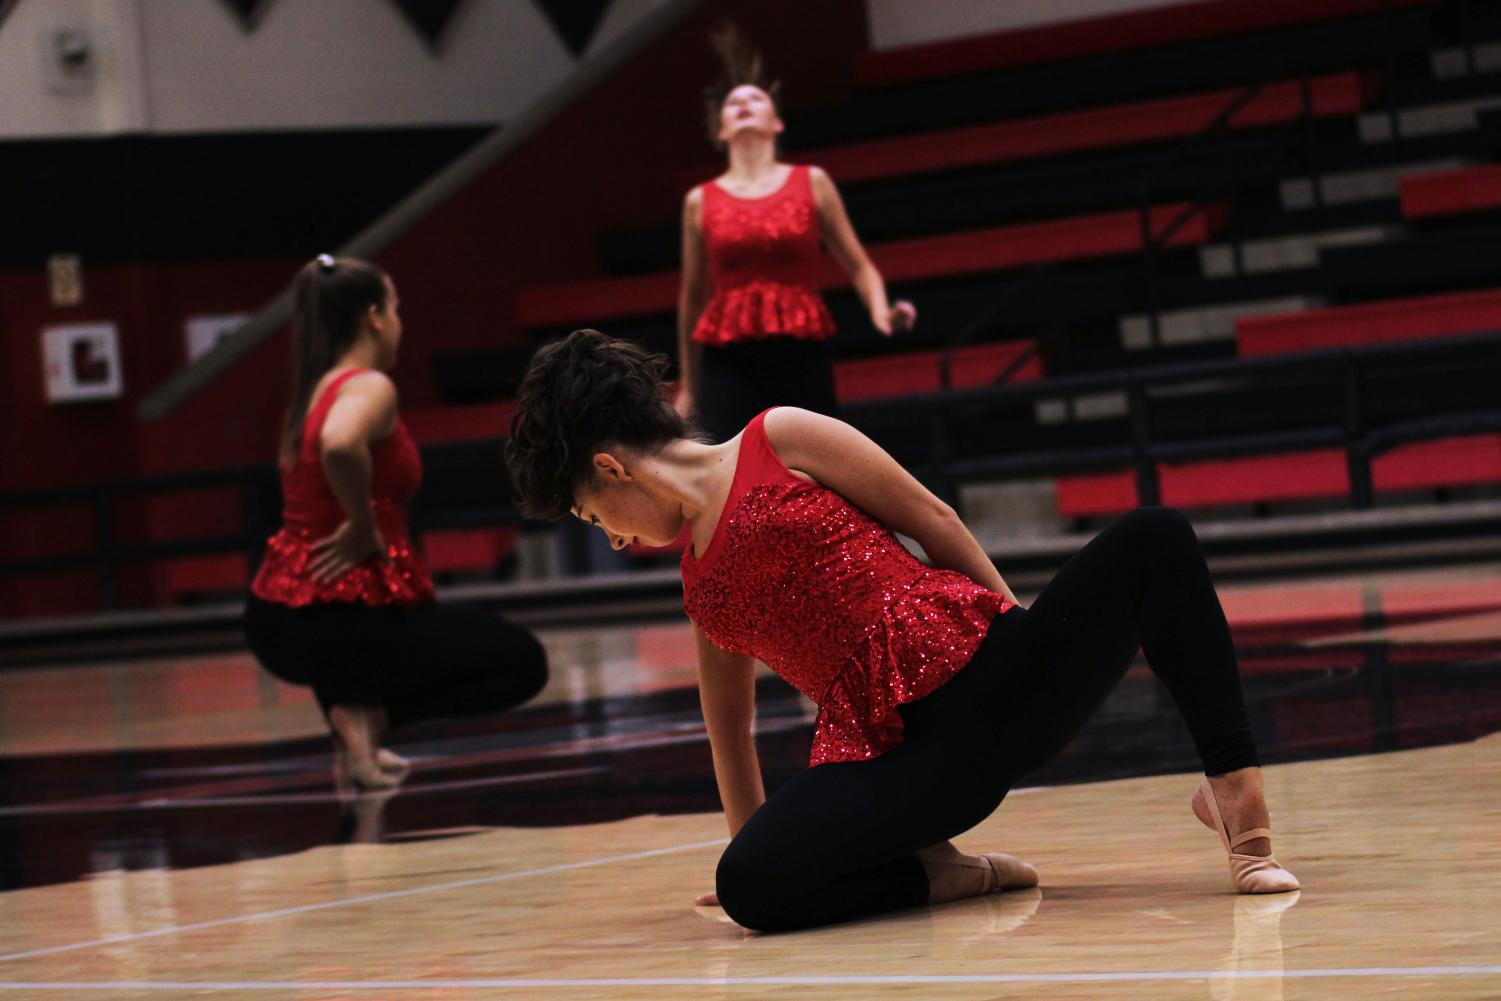 Senior+Majestics+Officer+Jessica+Luck+poses+on+the+ground+during+their+performance+to+Paula+Abdul%27s+%22Cold+Hearted%22.+